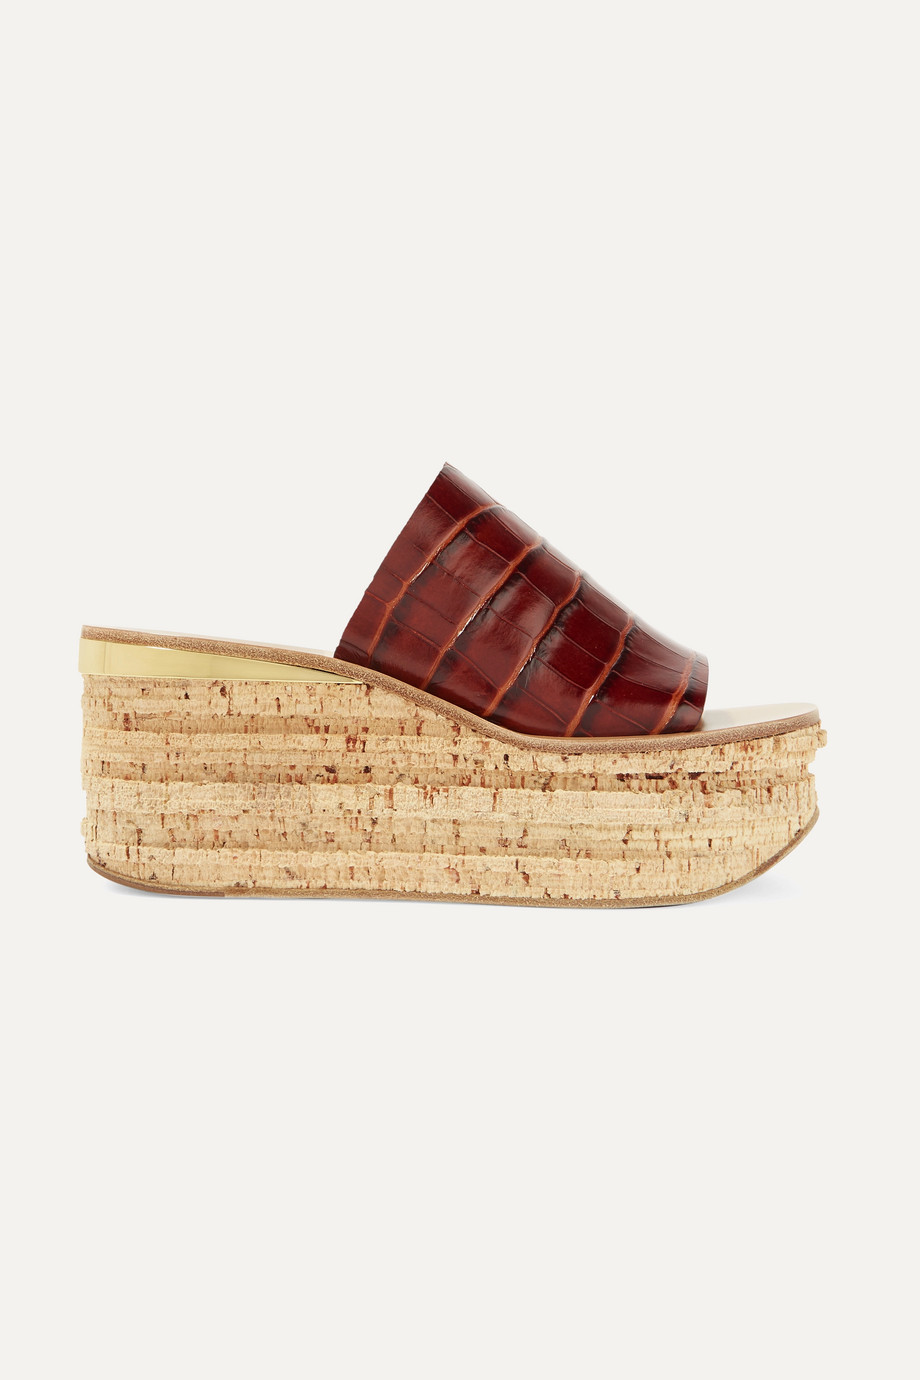 Chloé Camille croc-effect leather wedge sandals